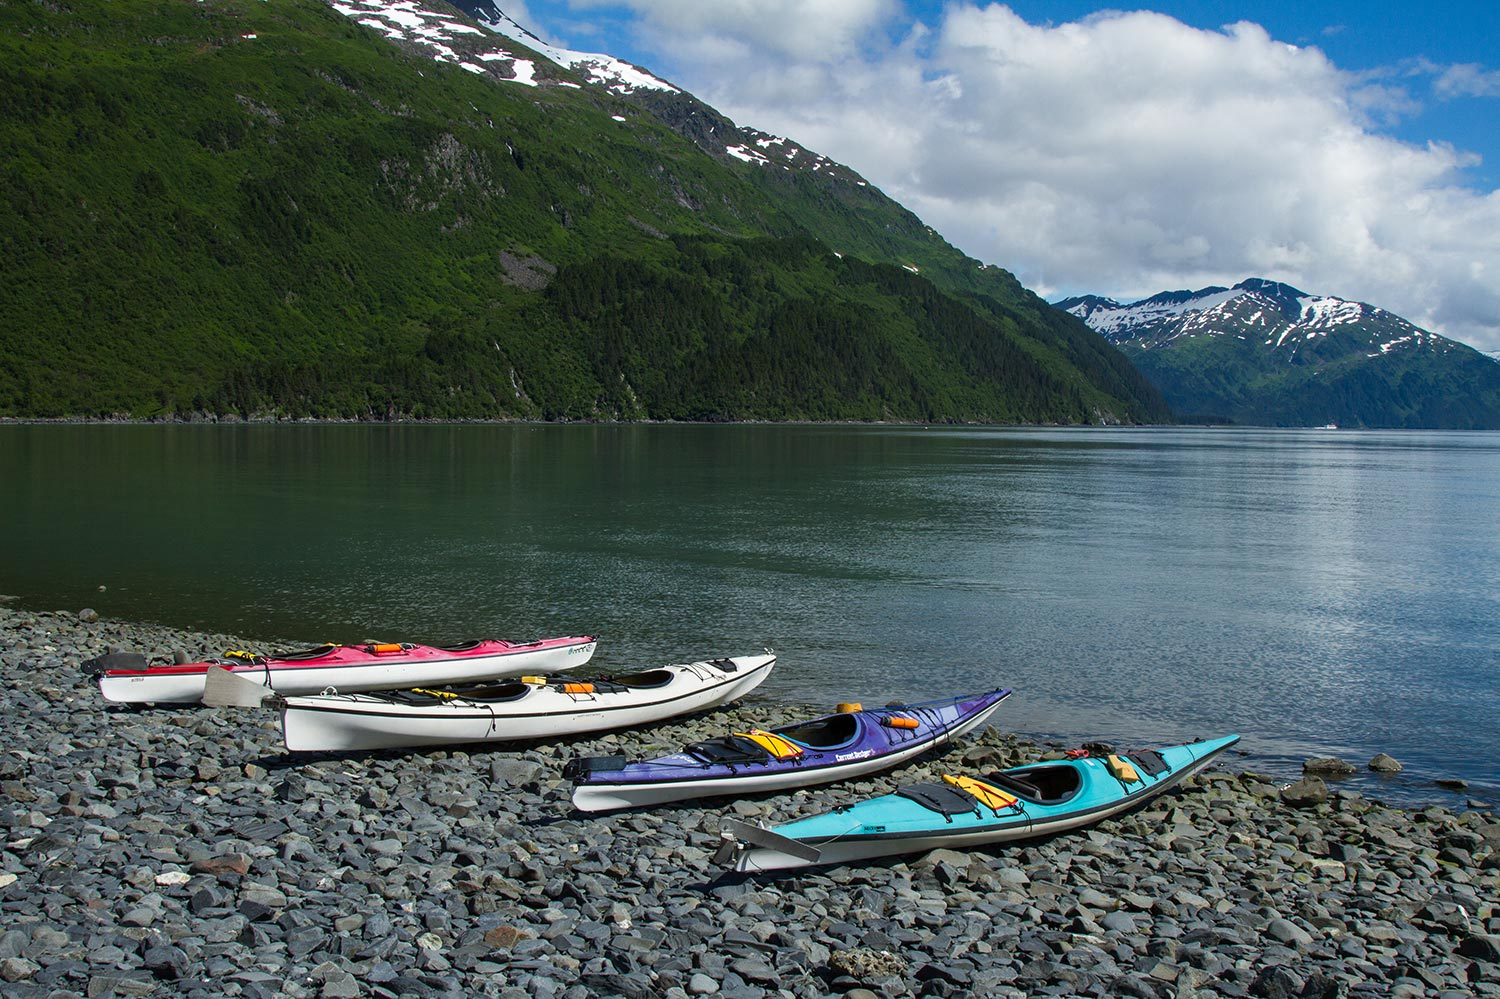 Kayaks at Rest in Prince William Sound